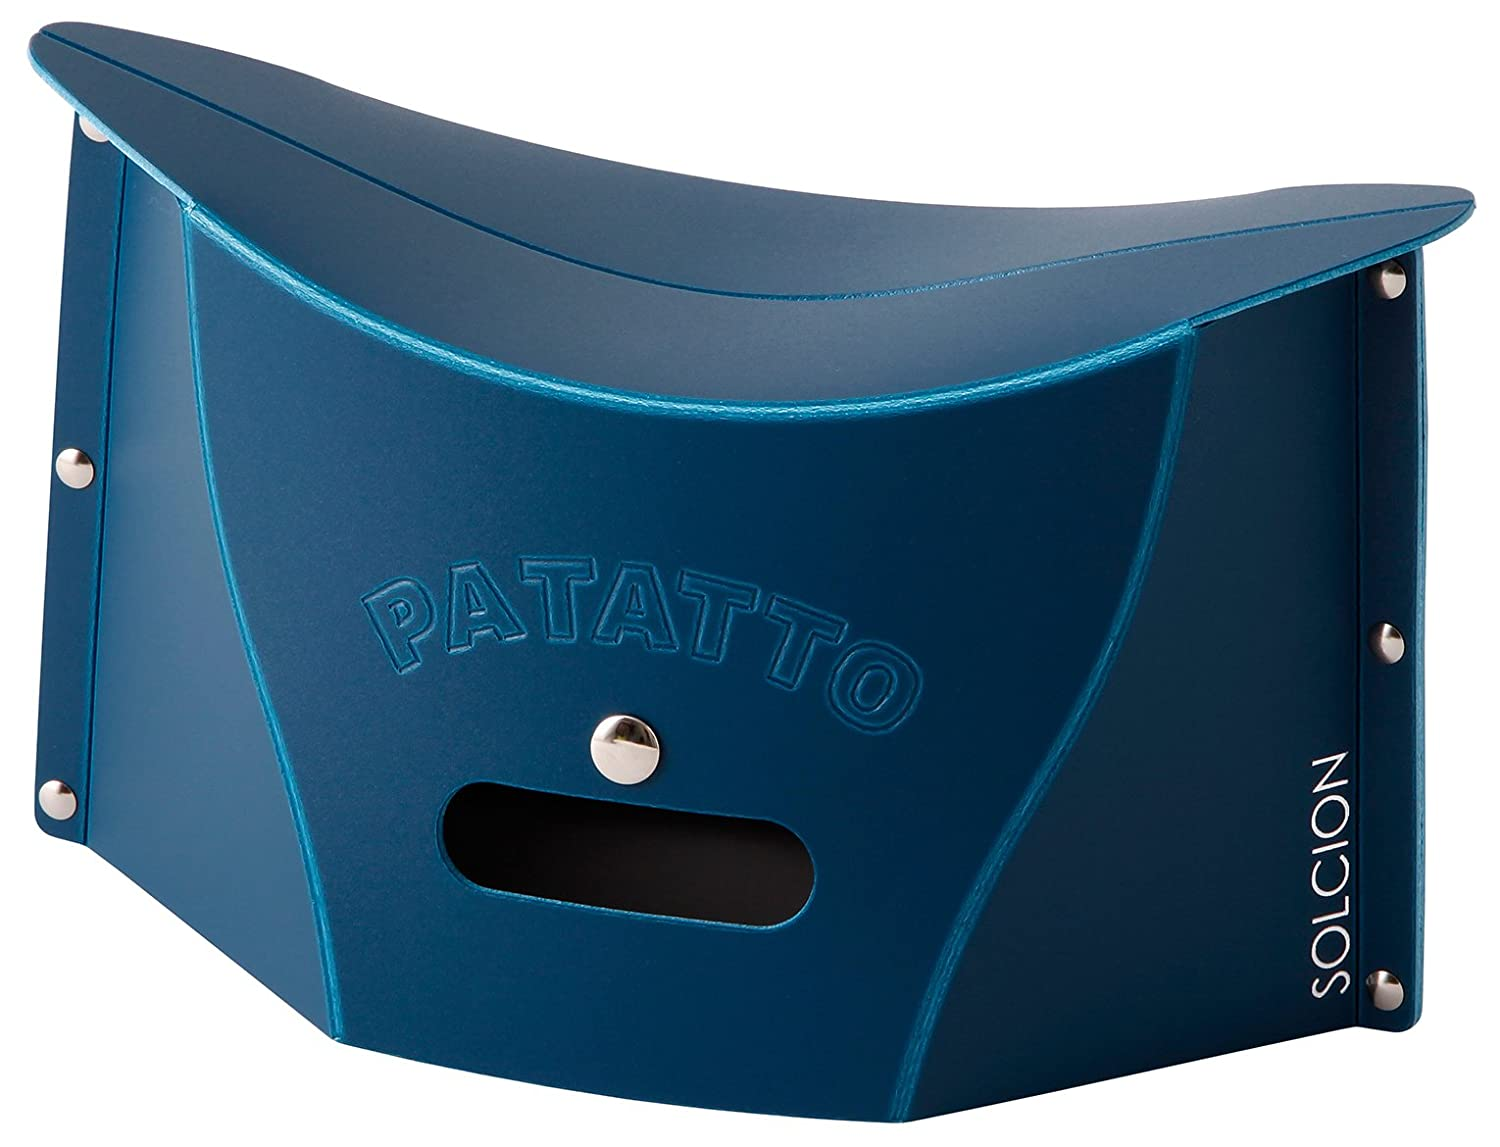 SOLCION Klappstühle patatto Mini (patatto Mini) Höhe 15 cm Navy PM003